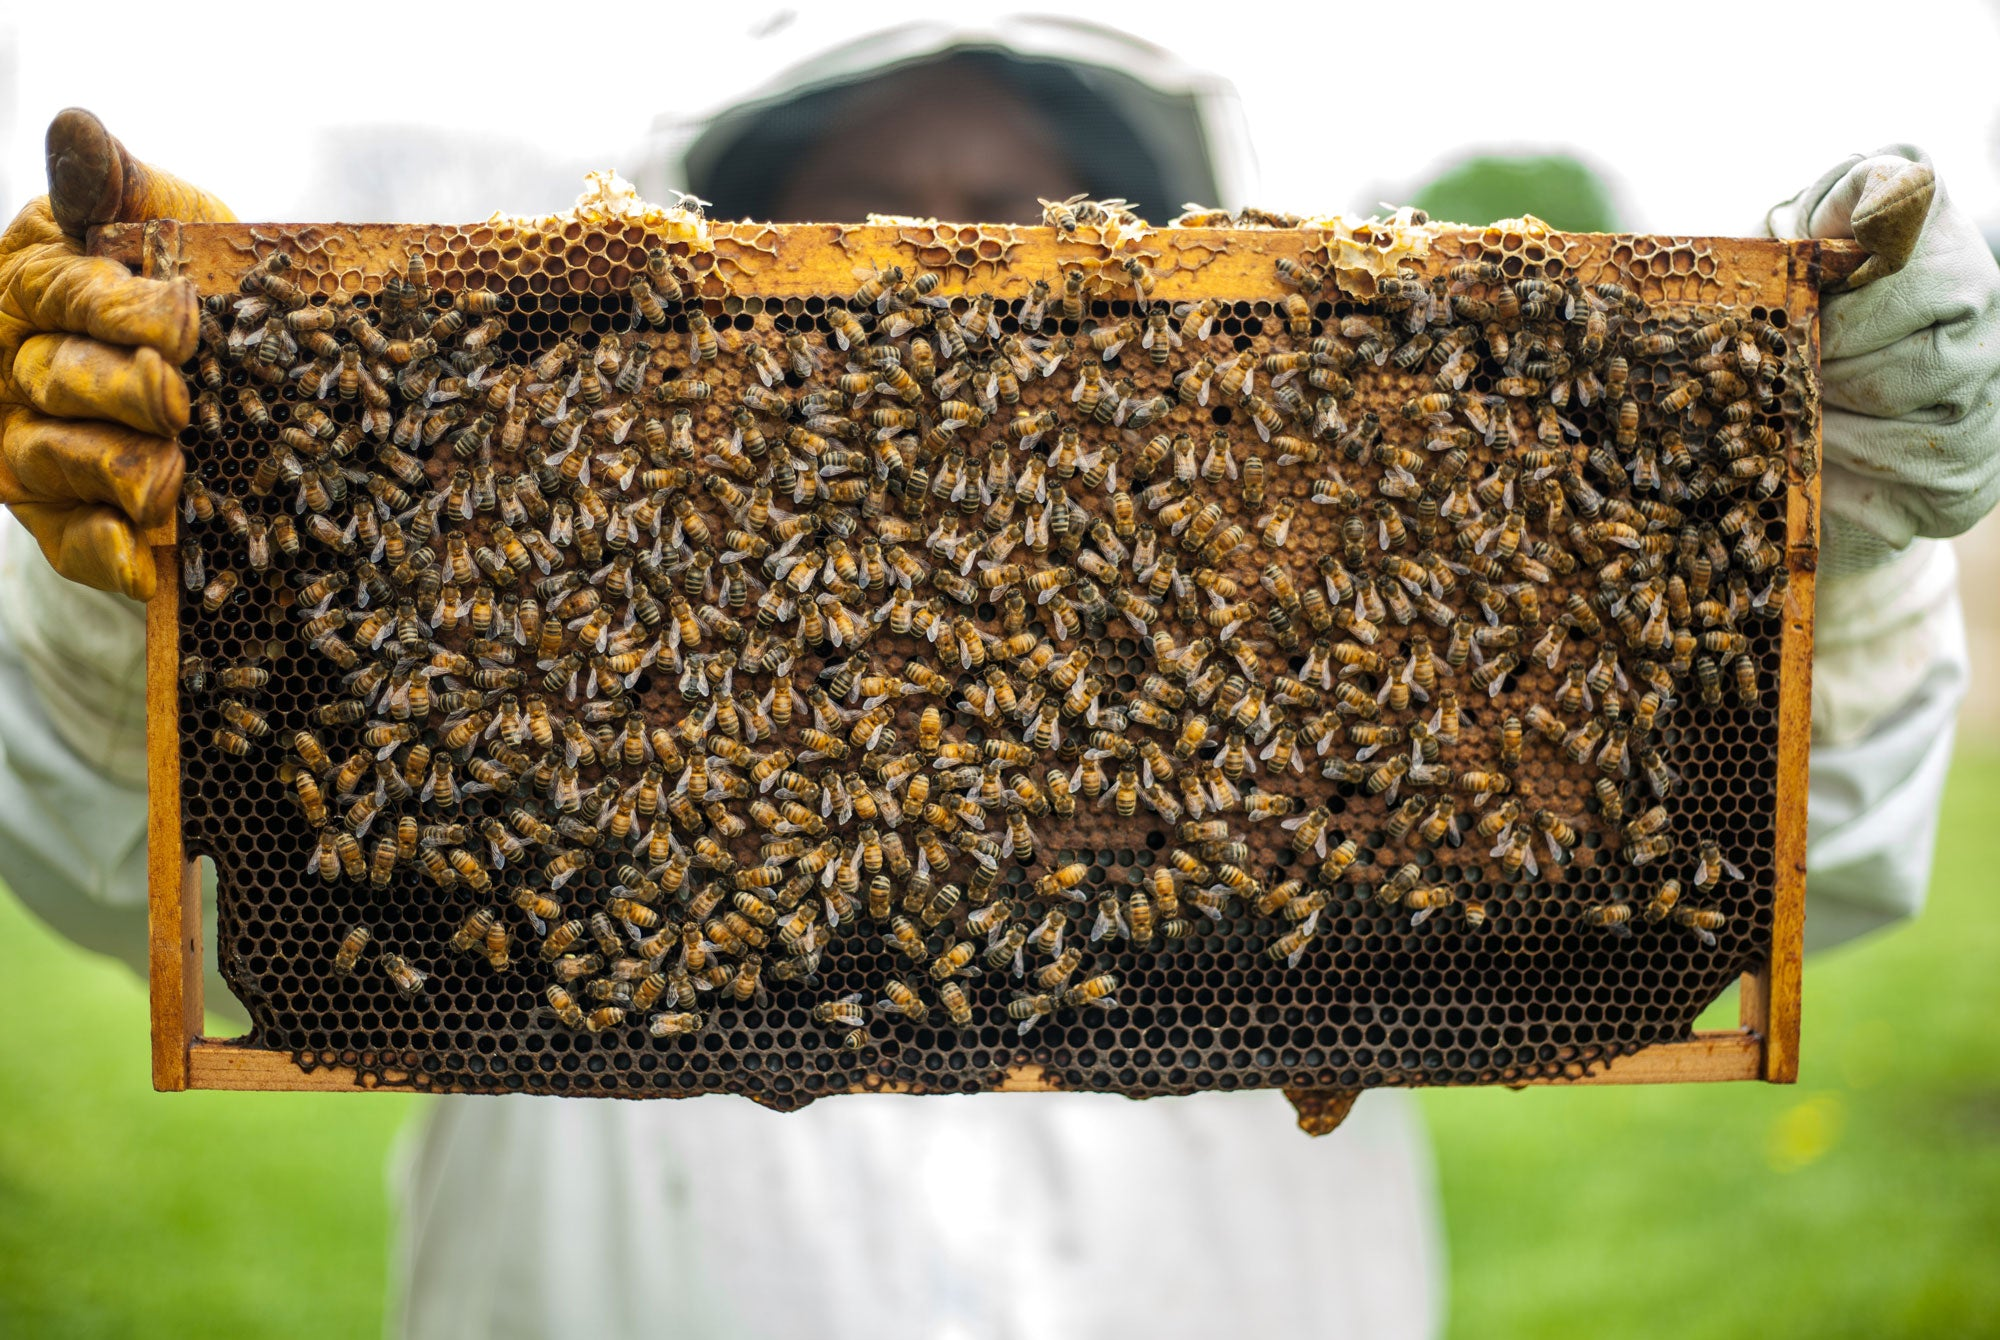 What's the matter with beeswax?